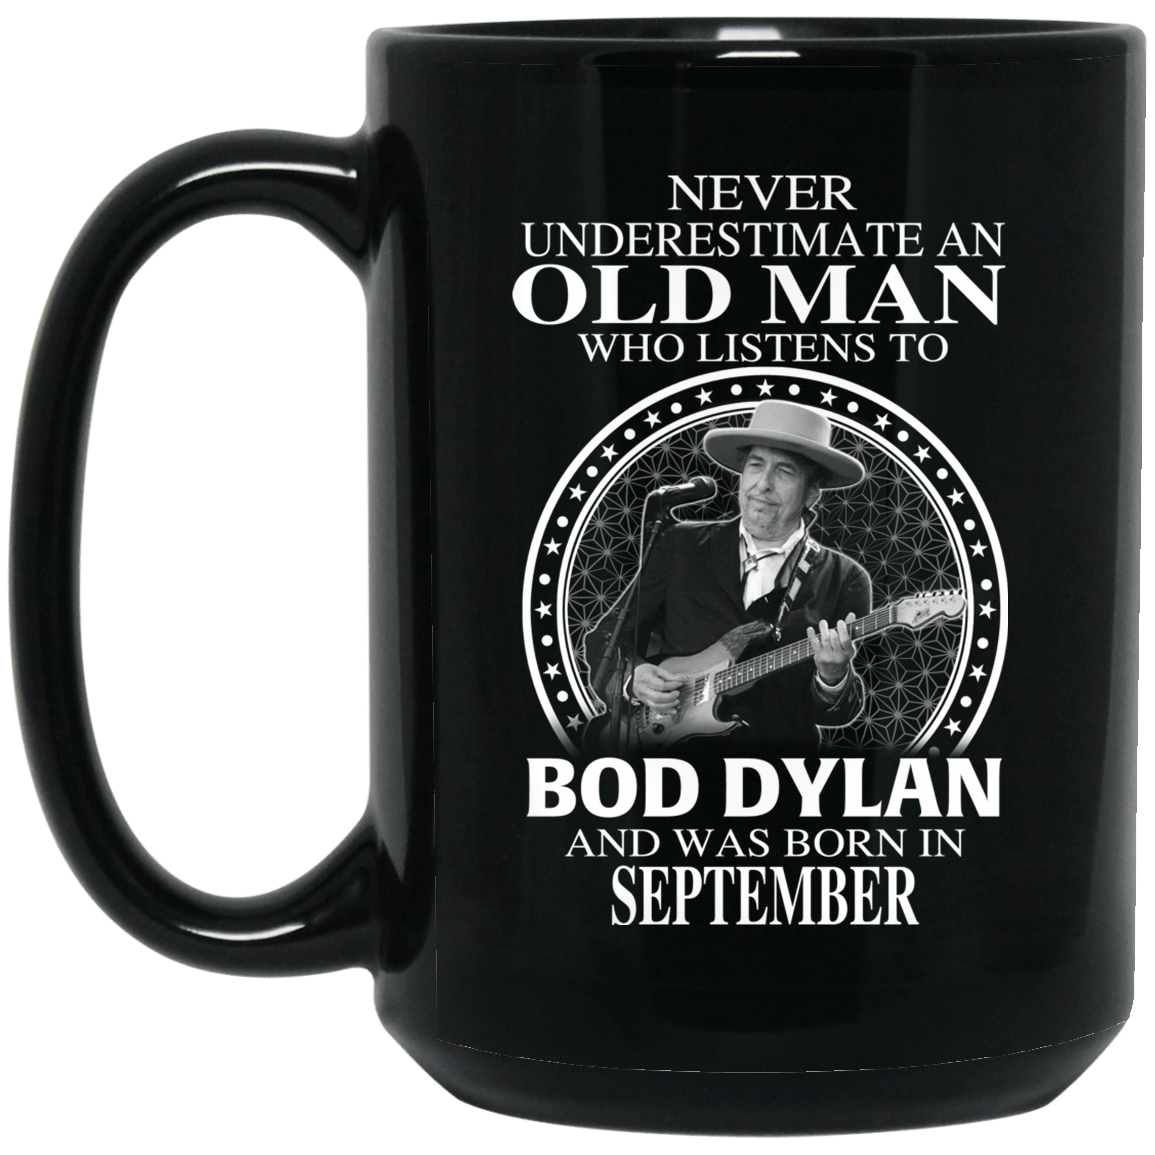 An Old Man Who Listens To Bob Dylan And Was Born In September Mug 1066-10182-76154380-49311 - Tee Ript